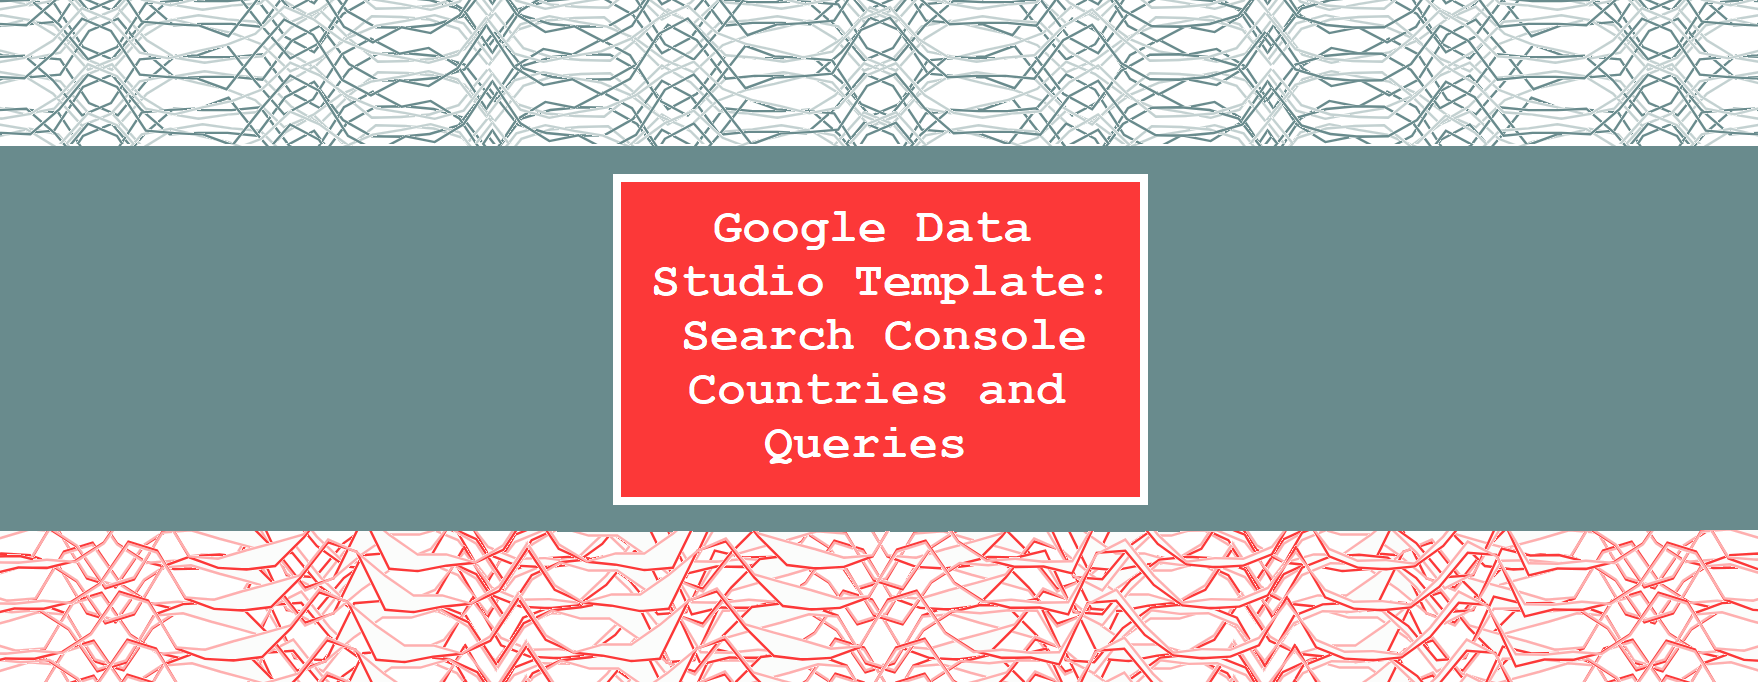 Google Data Studio Template Search Console Countries and Queries